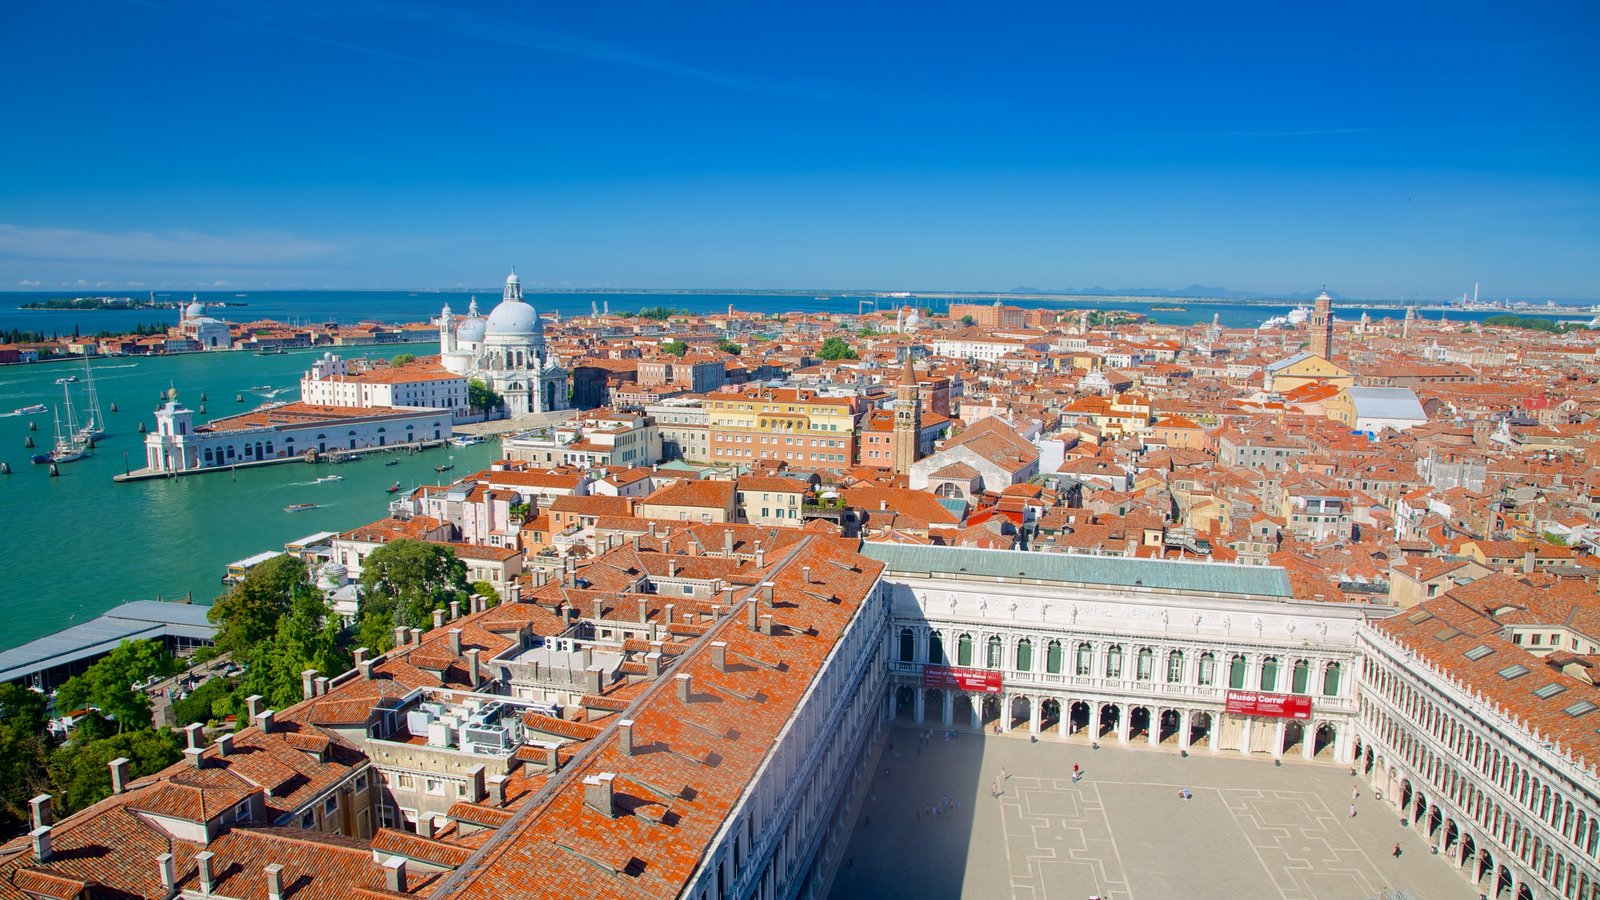 St Mark\'s Campanile which includes a coastal town and heritage architecture